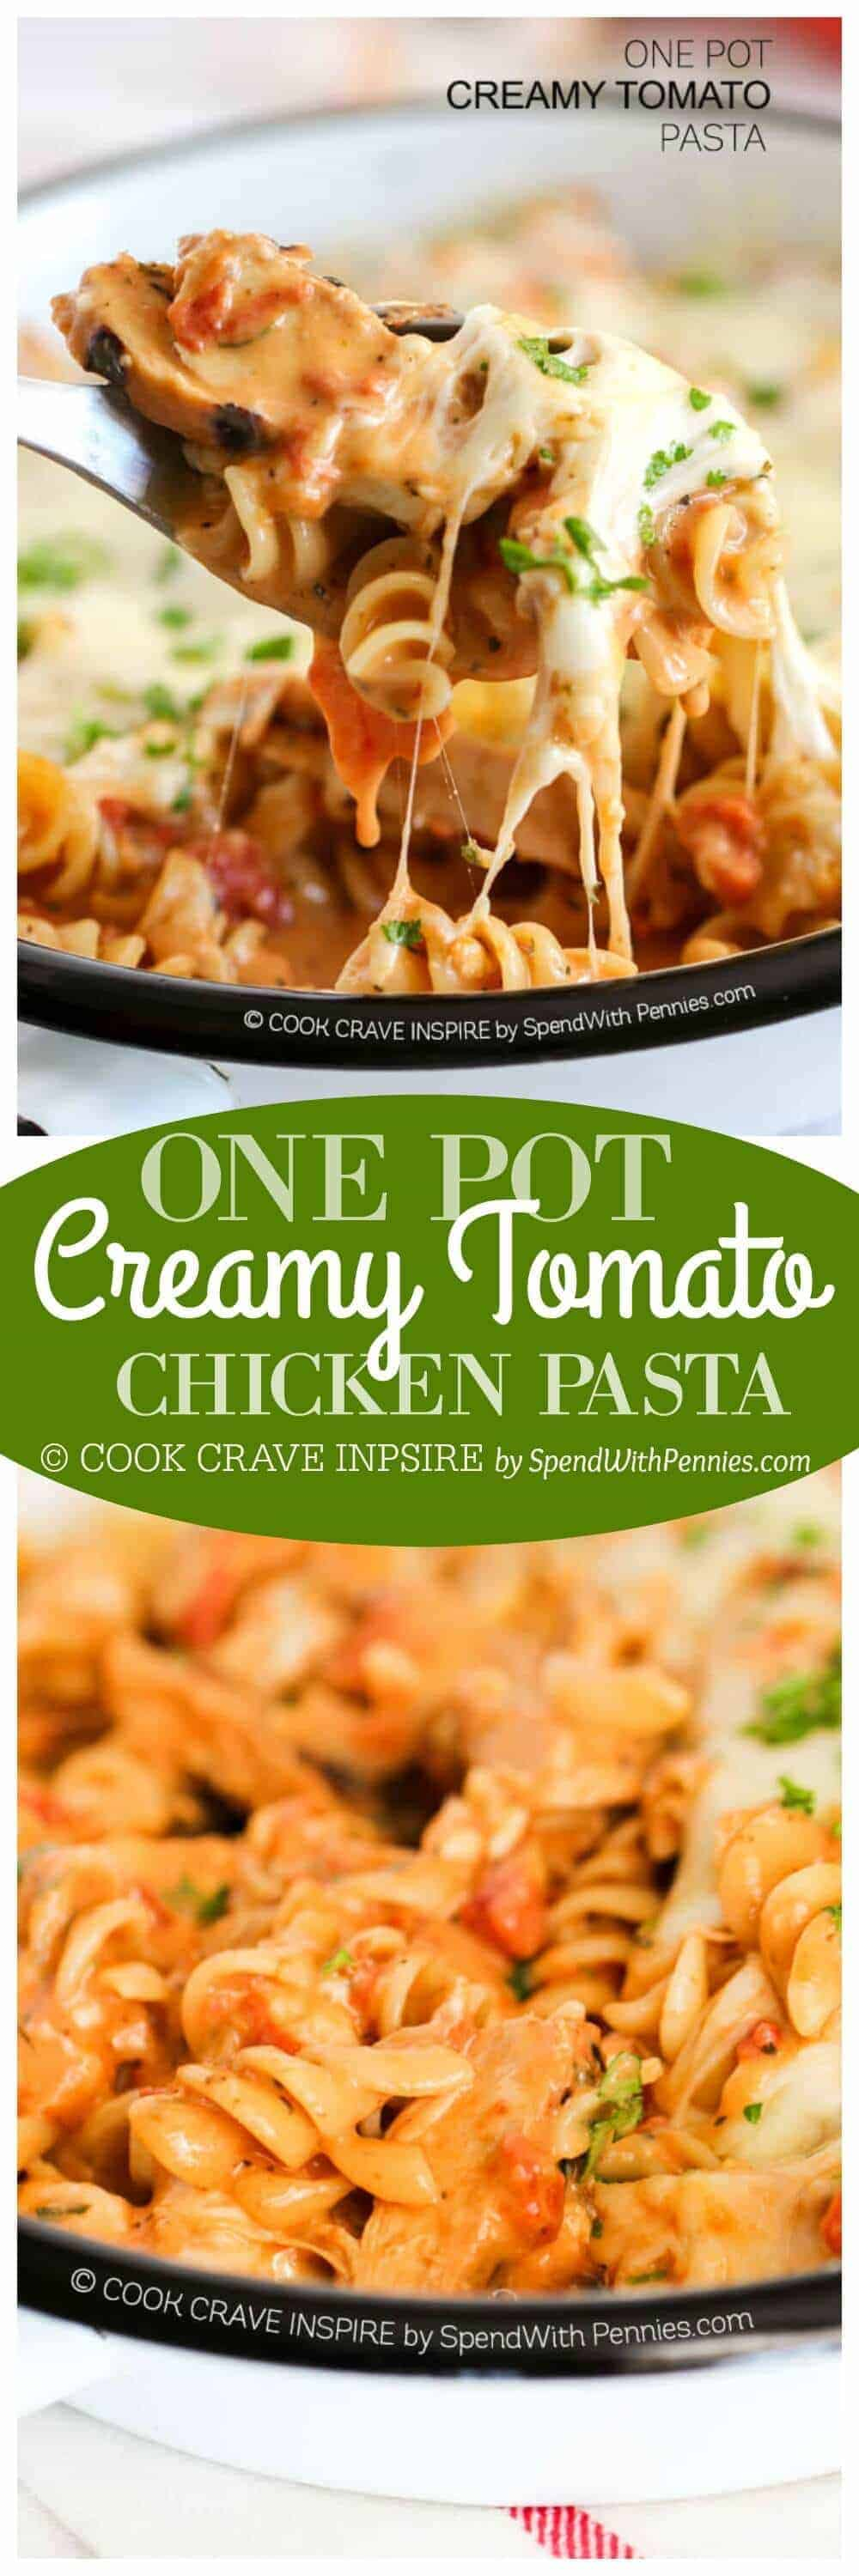 One Pot Pasta Creamy Tomato with rotini with a title